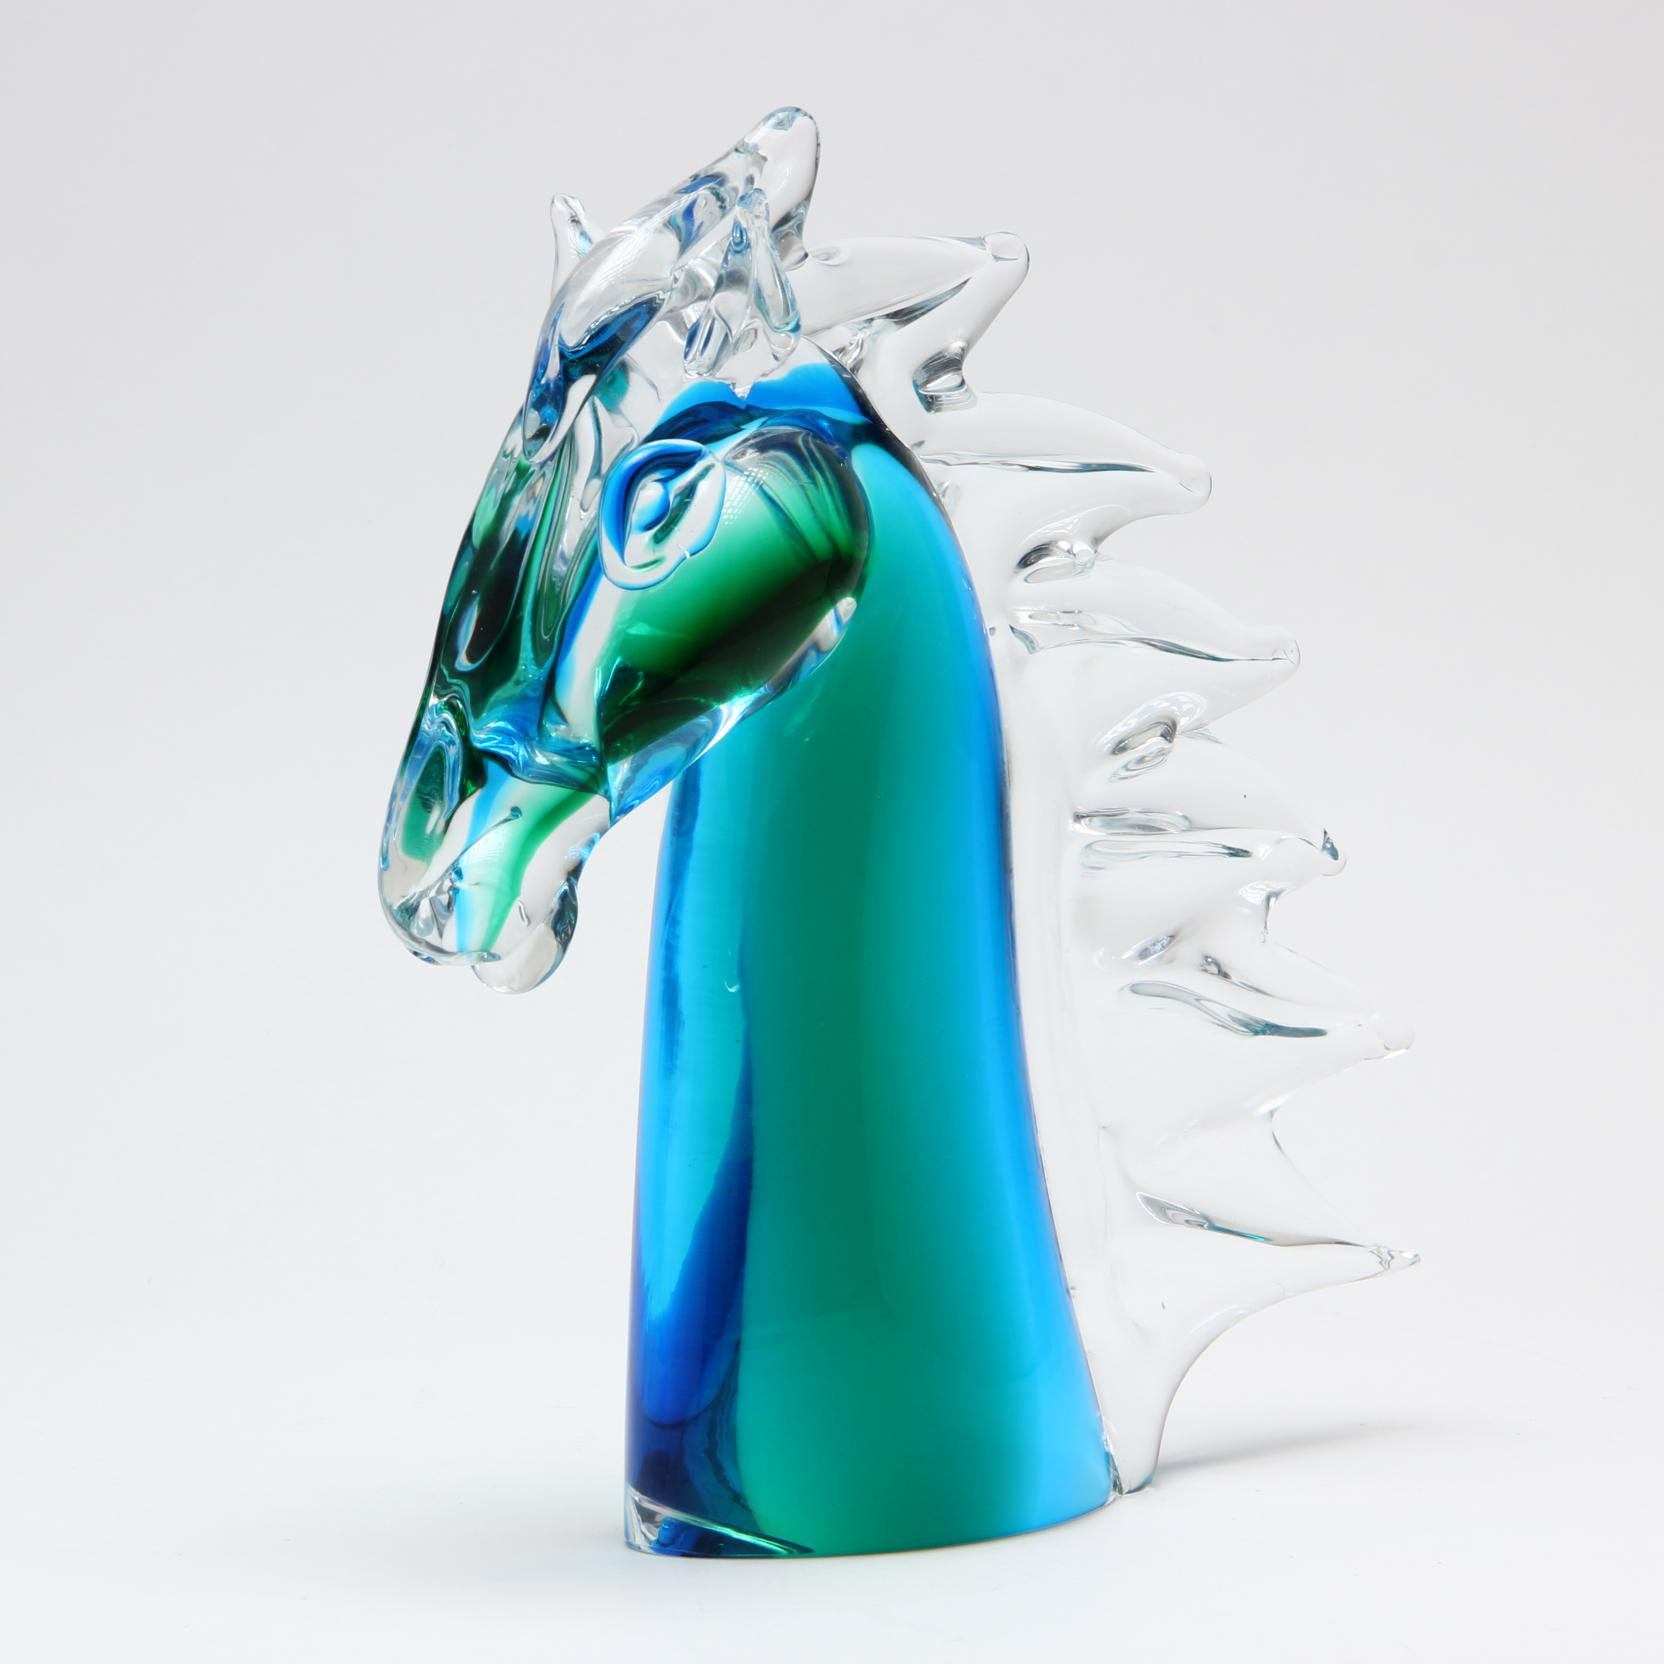 murano-glass-bust-of-a-horse